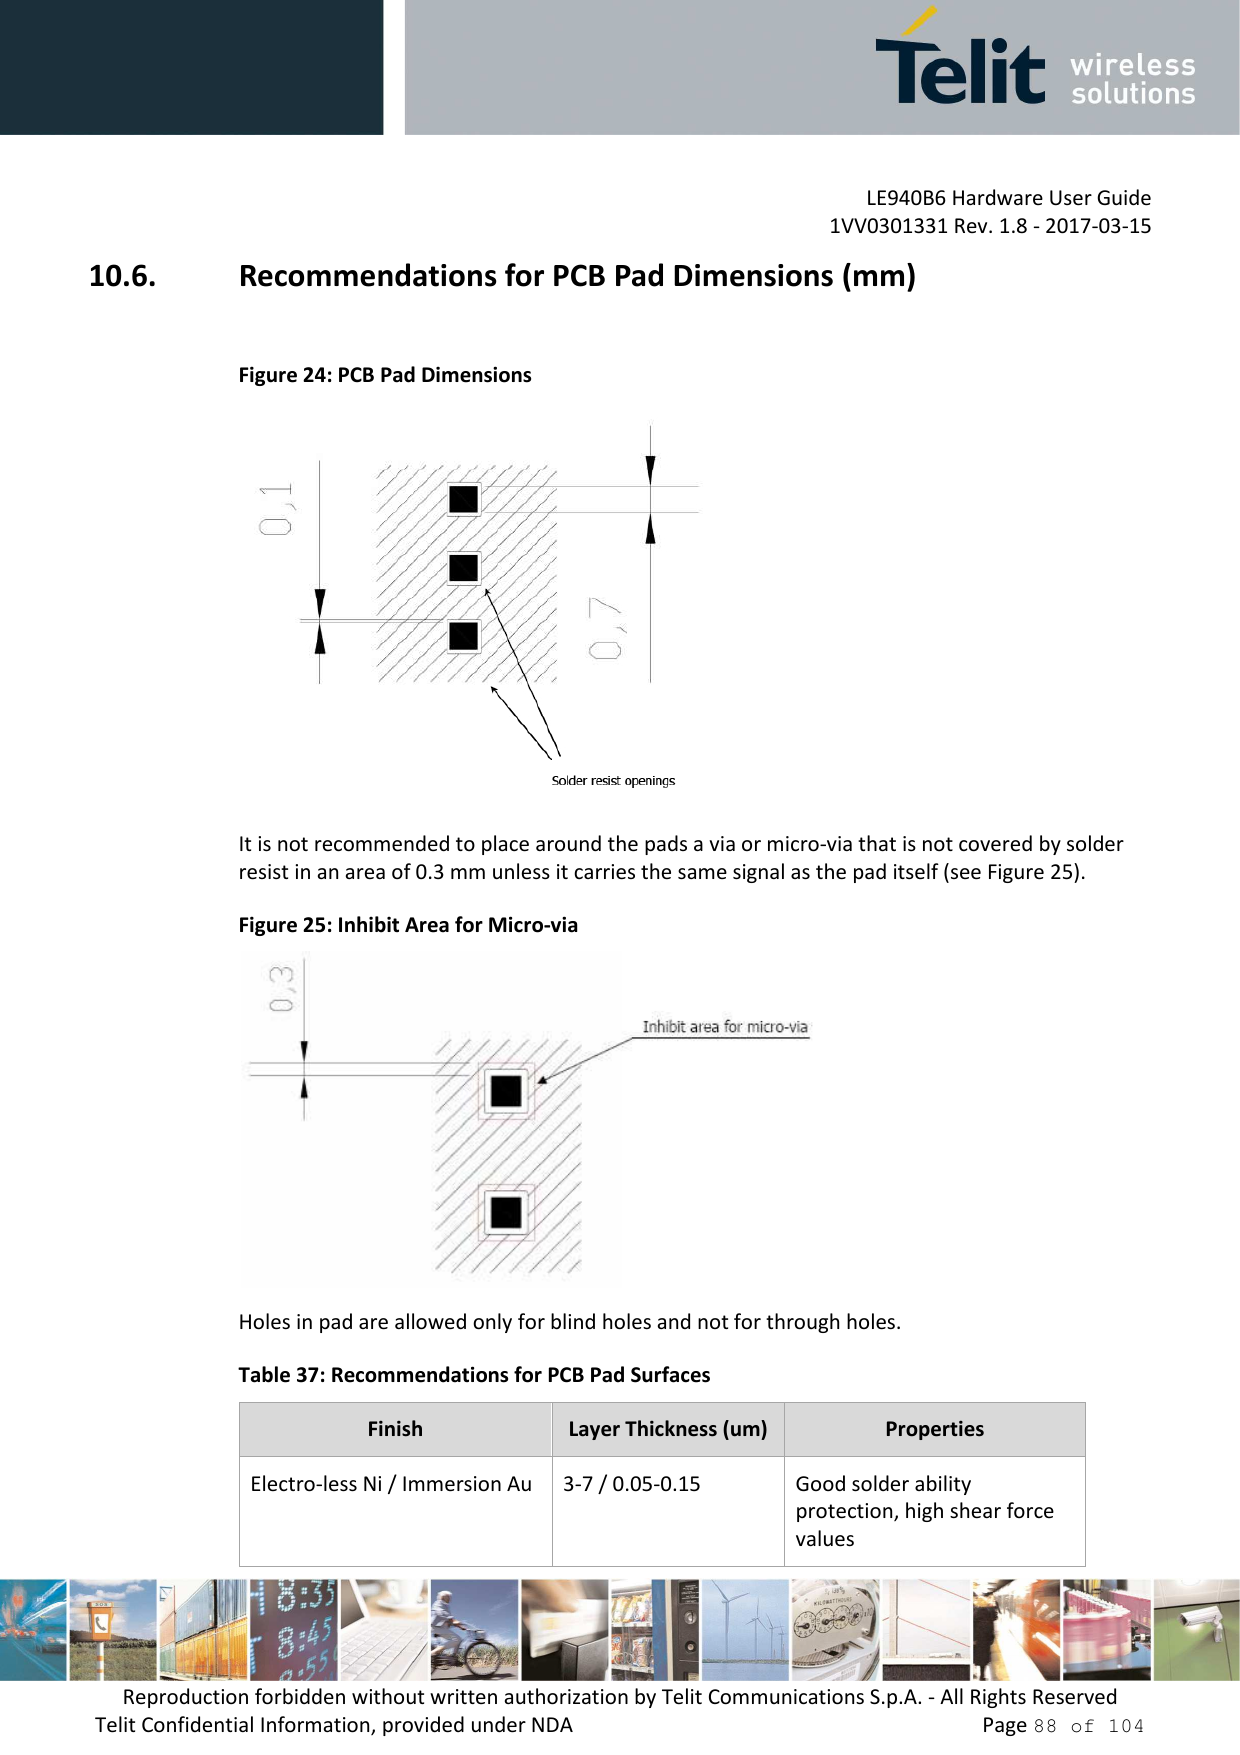 LE940B6 Hardware User Guide     1VV0301331 Rev. 1.8 - 2017-03-15 Reproduction forbidden without written authorization by Telit Communications S.p.A. - All Rights Reserved Telit Confidential Information, provided under NDA                 Page 88 of 104 10.6. Recommendations for PCB Pad Dimensions (mm)  Figure 24: PCB Pad Dimensions  It is not recommended to place around the pads a via or micro-via that is not covered by solder resist in an area of 0.3 mm unless it carries the same signal as the pad itself (see Figure 25). Figure 25: Inhibit Area for Micro-via  Holes in pad are allowed only for blind holes and not for through holes. Table 37: Recommendations for PCB Pad Surfaces Finish  Layer Thickness (um) Properties Electro-less Ni / Immersion Au  3-7 / 0.05-0.15  Good solder ability protection, high shear force values